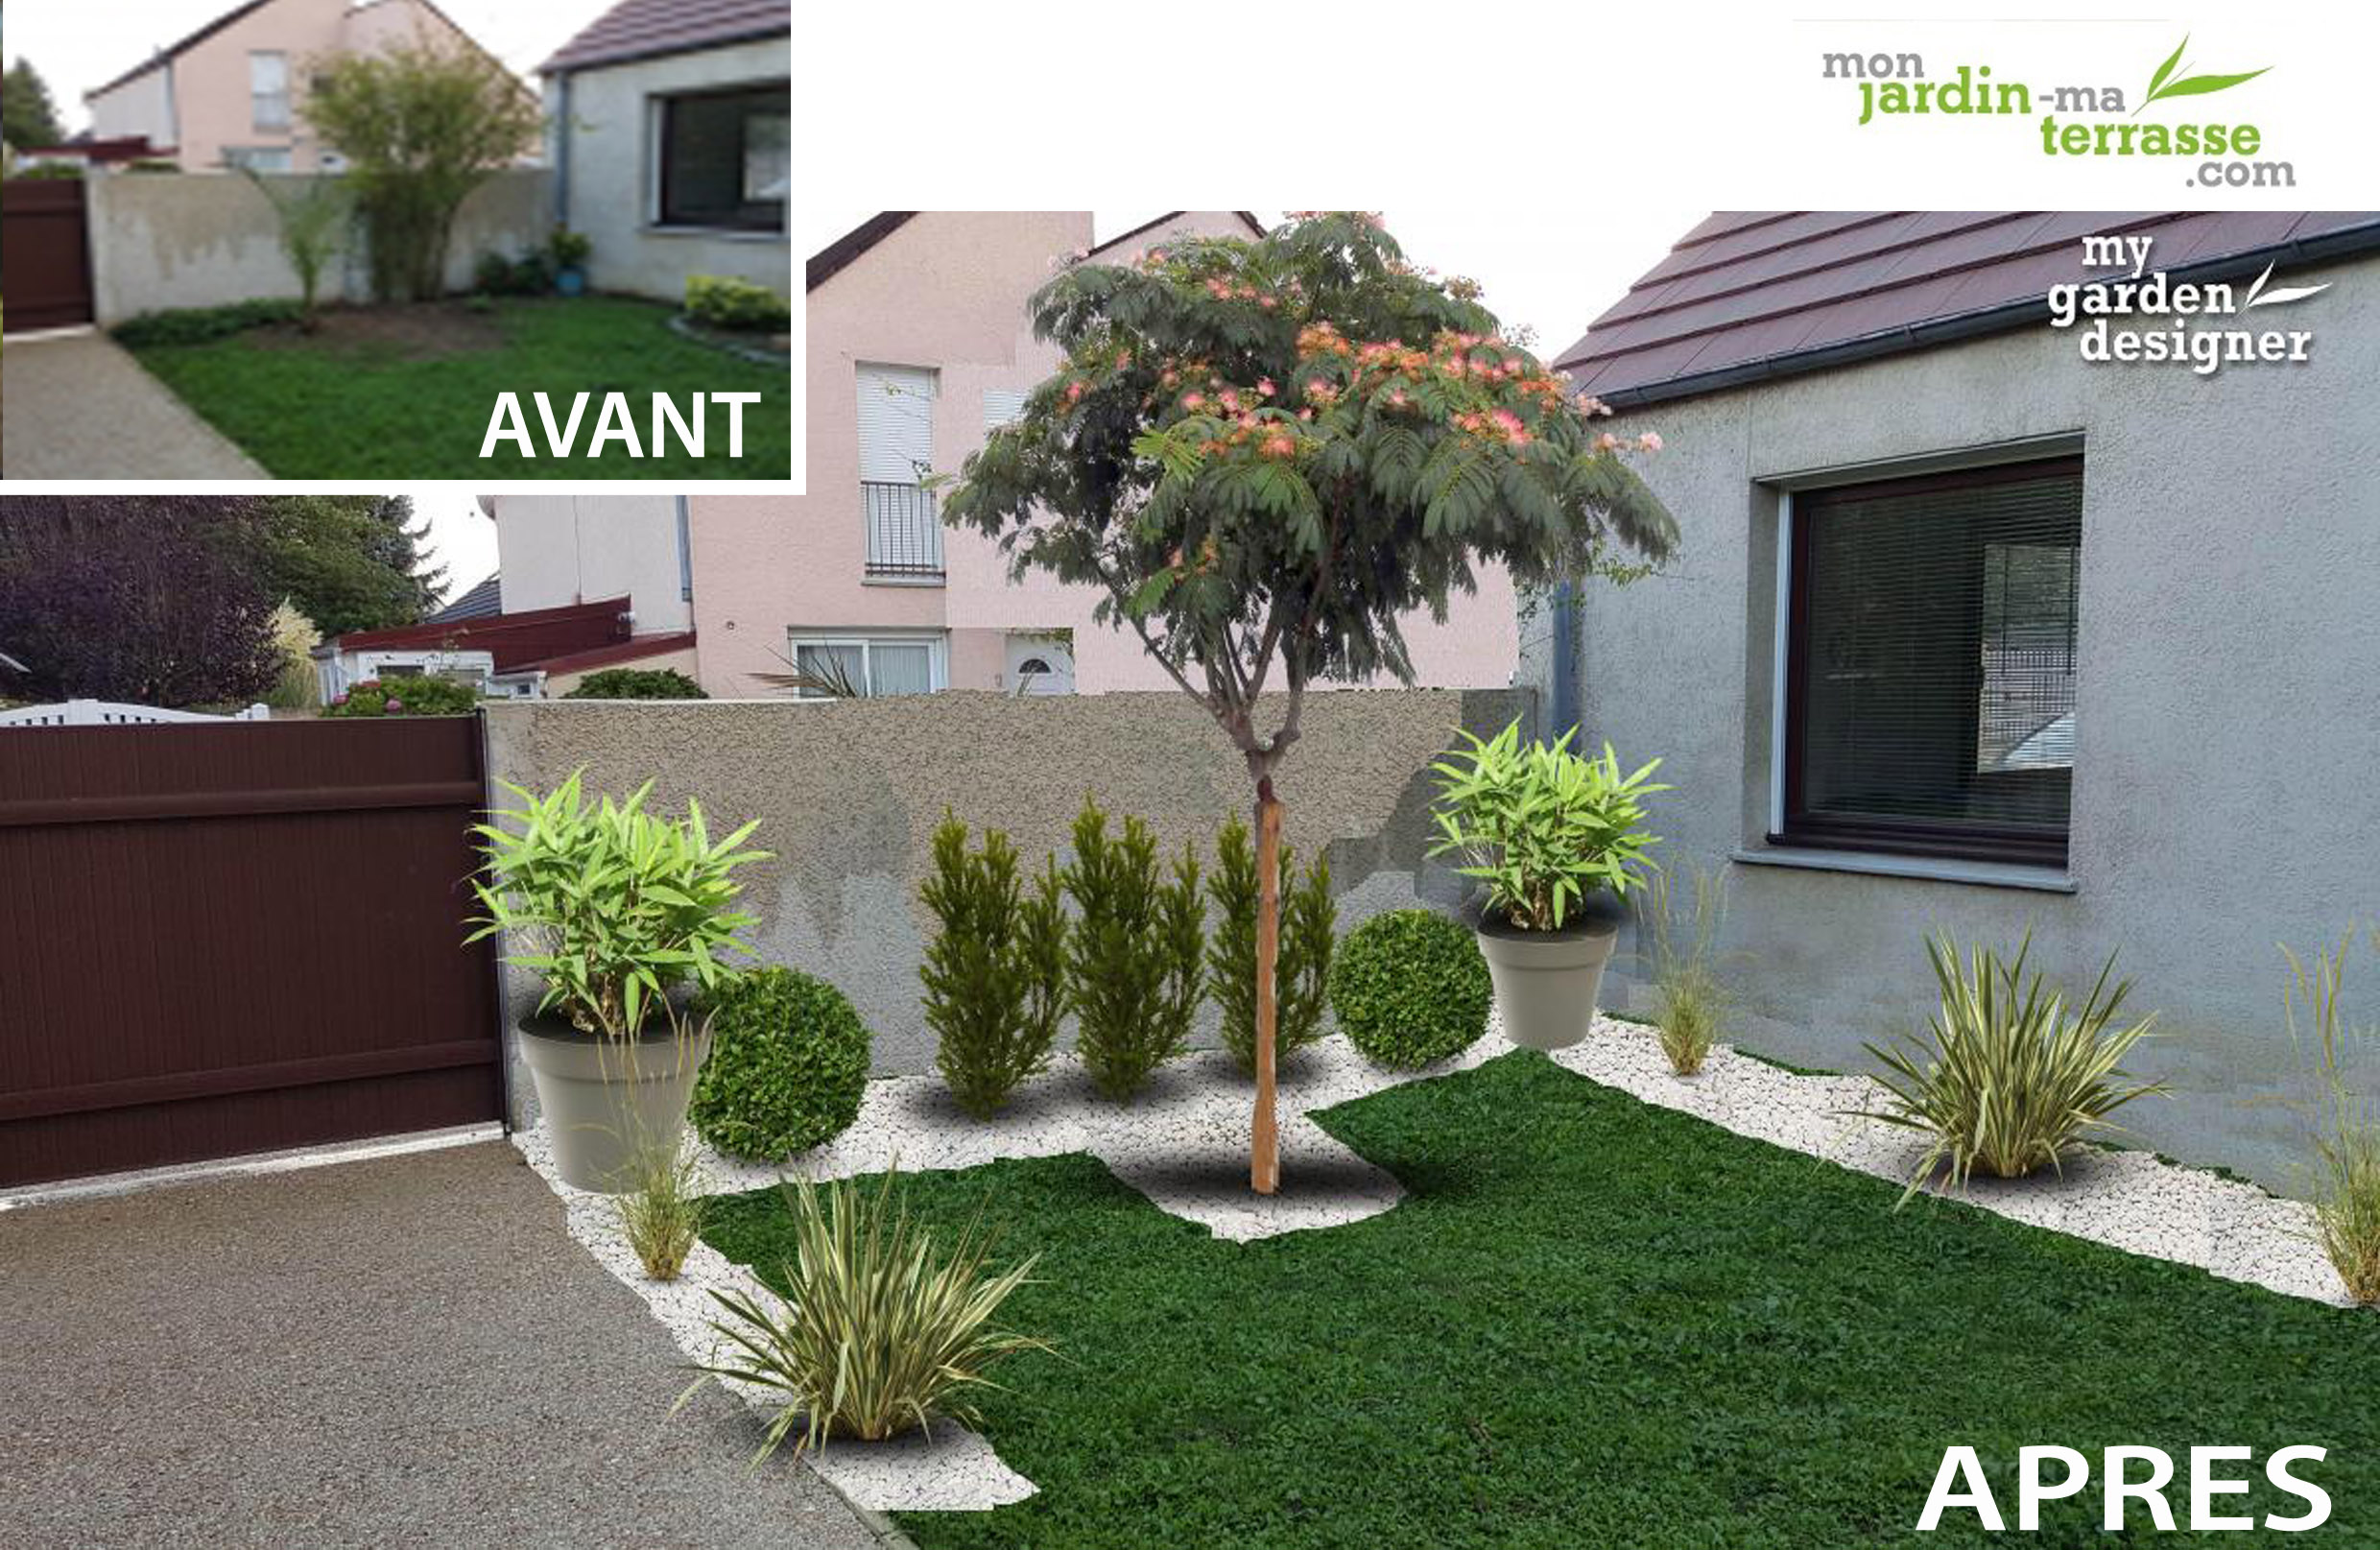 Am nager un petit jardin de 30m monjardin for Exemple amenagement jardin exterieur